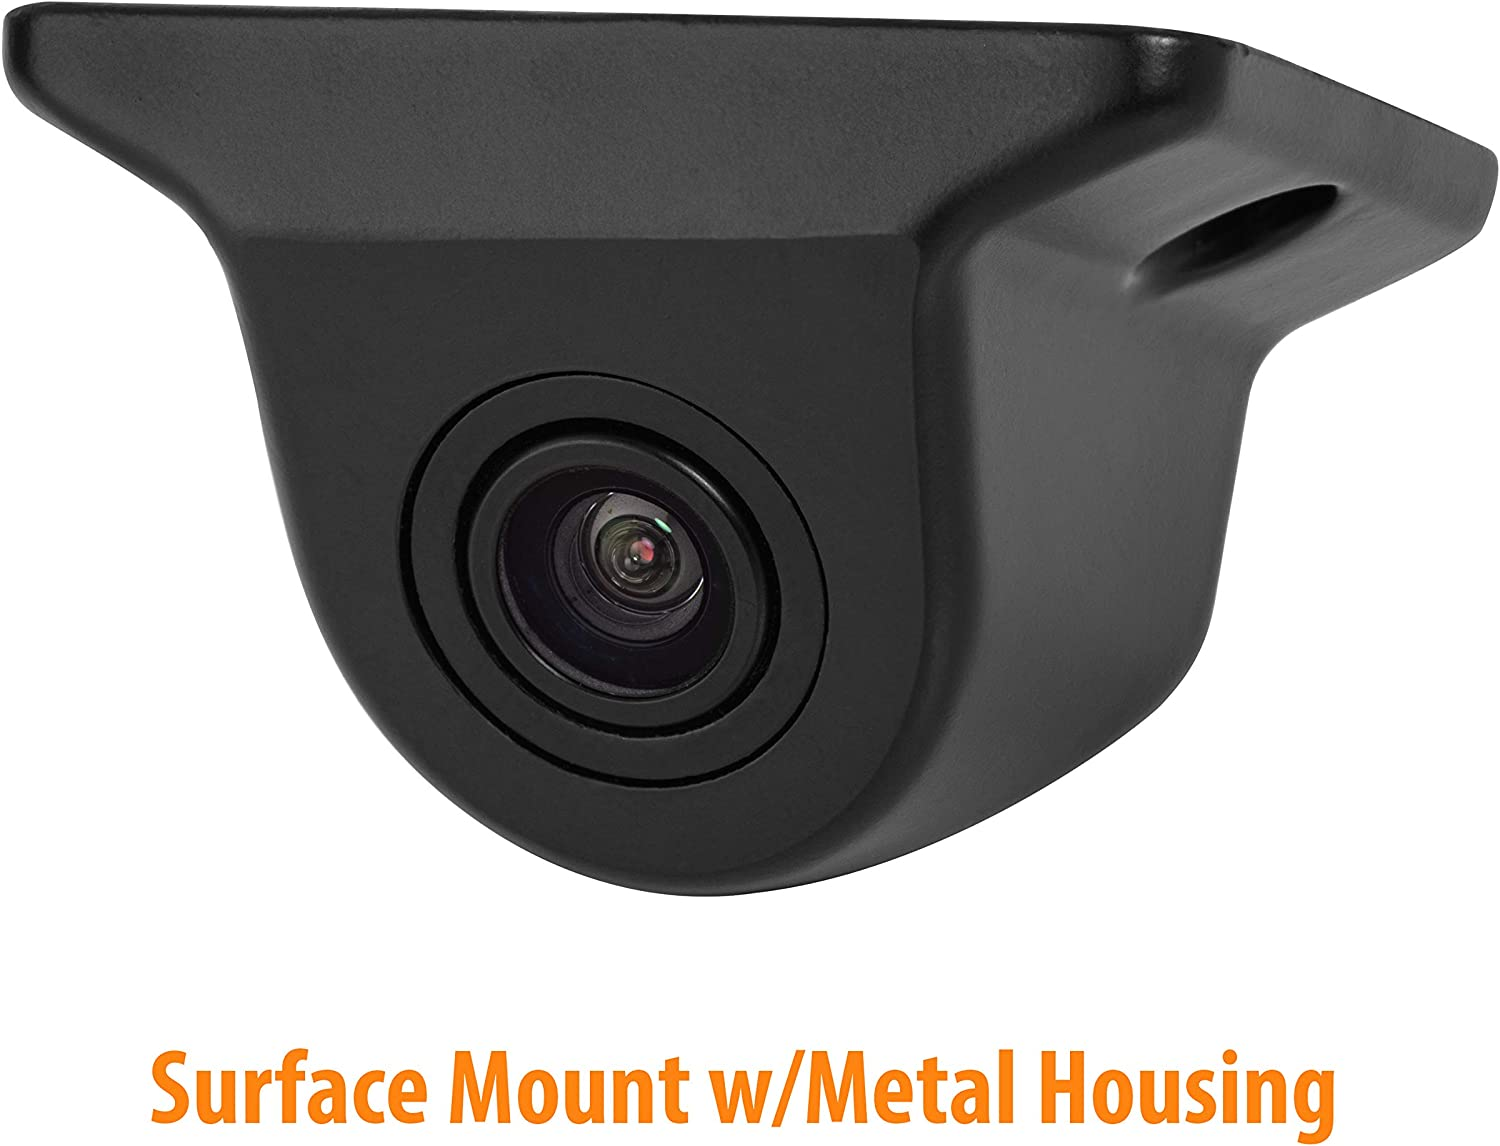 Universal HD Backup Camera with Multiple Mounting Options 6-in-1 Camera System BOYO VTK601HD